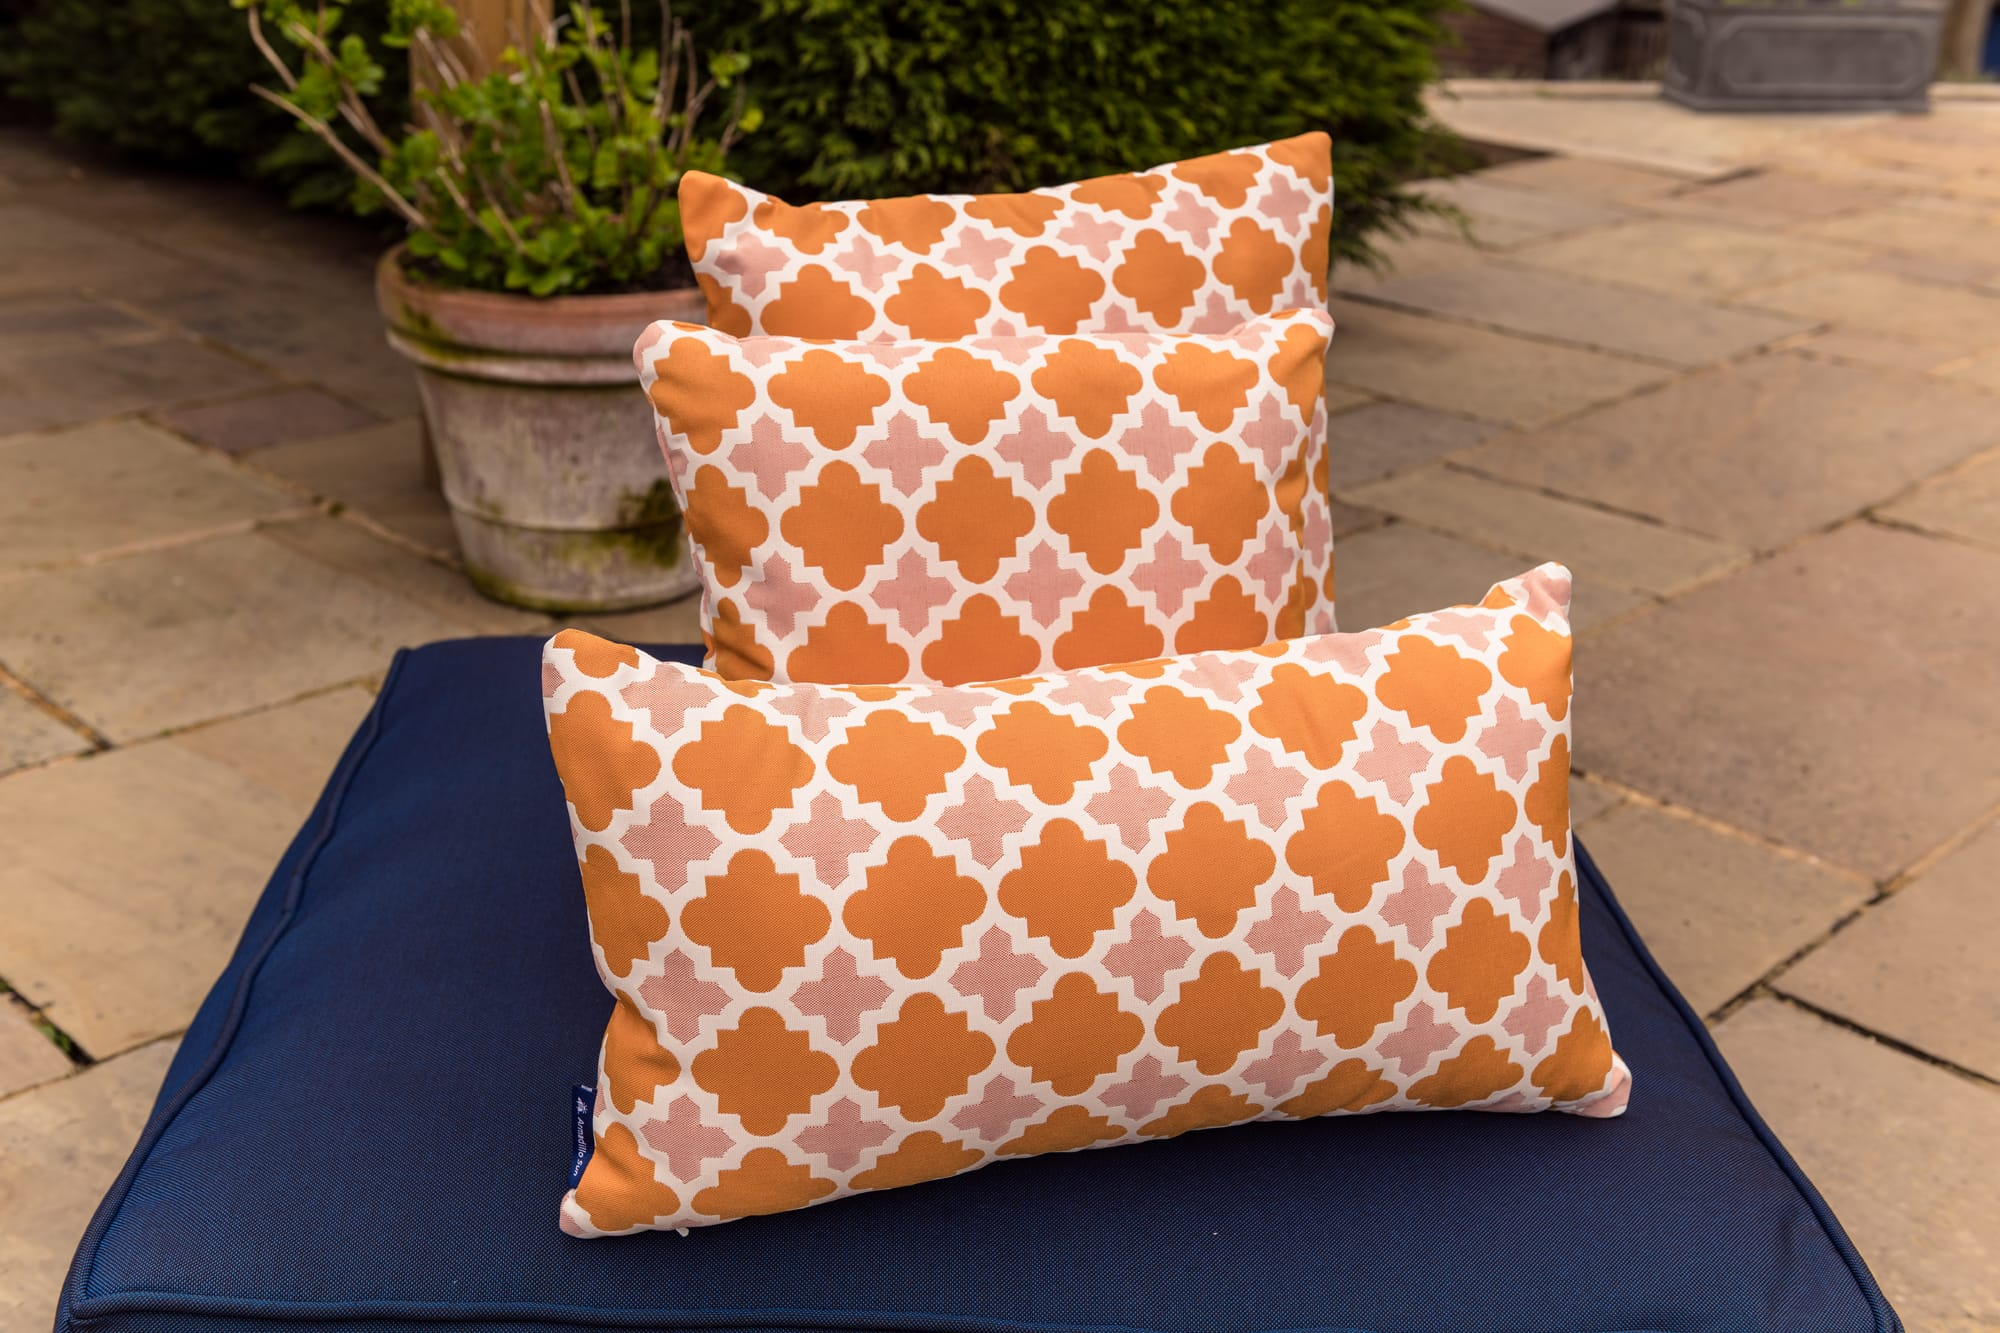 Luxury Outdoor Cushion in Orange Lattice design Bean Bag Cushion armadillosun